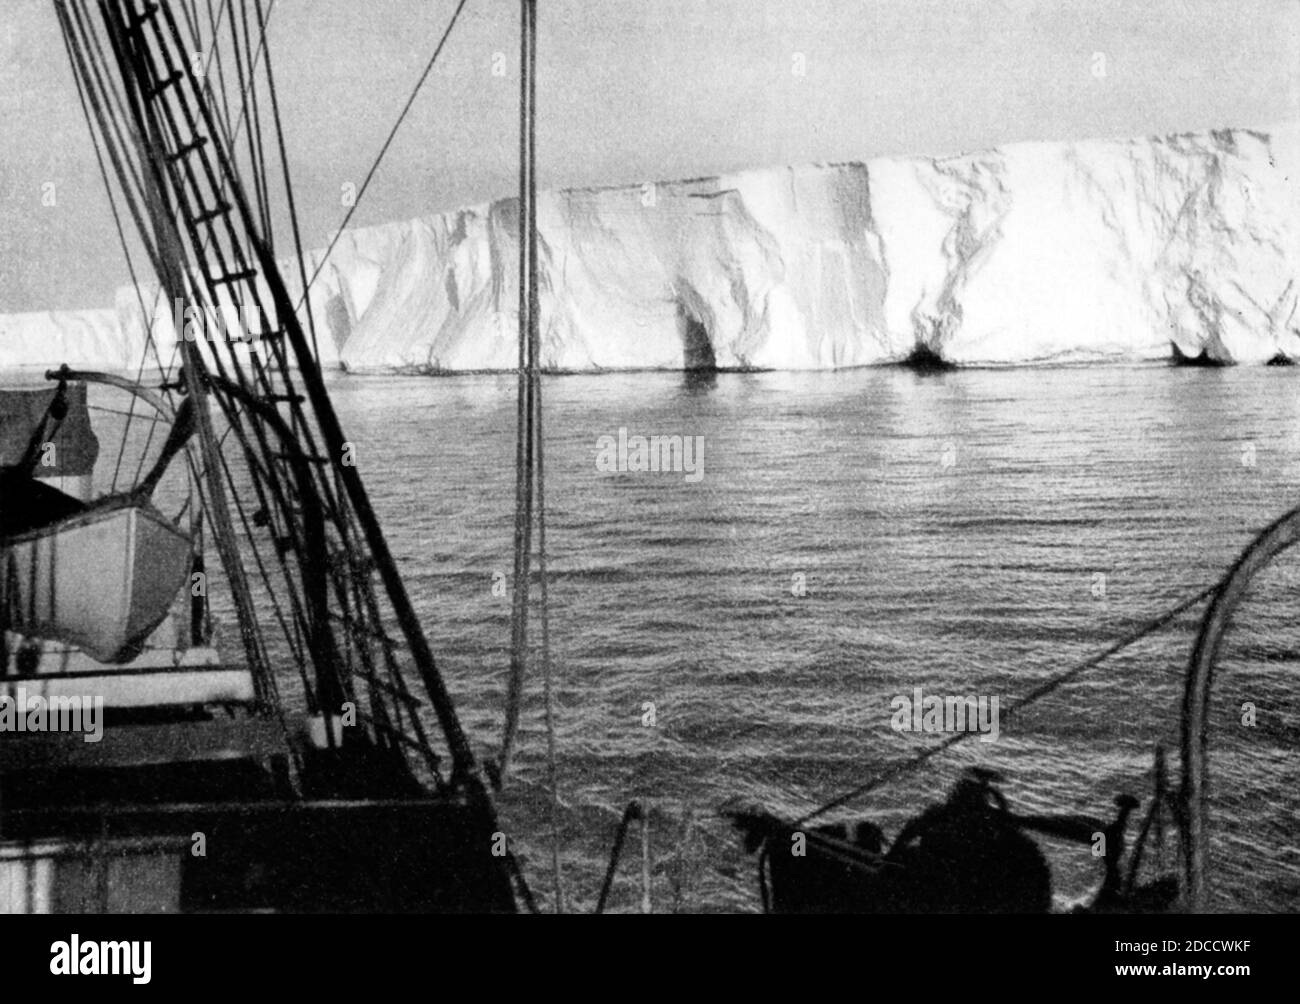 Australasian Antarctic Expedition, Barrier Cliffs Stockfoto